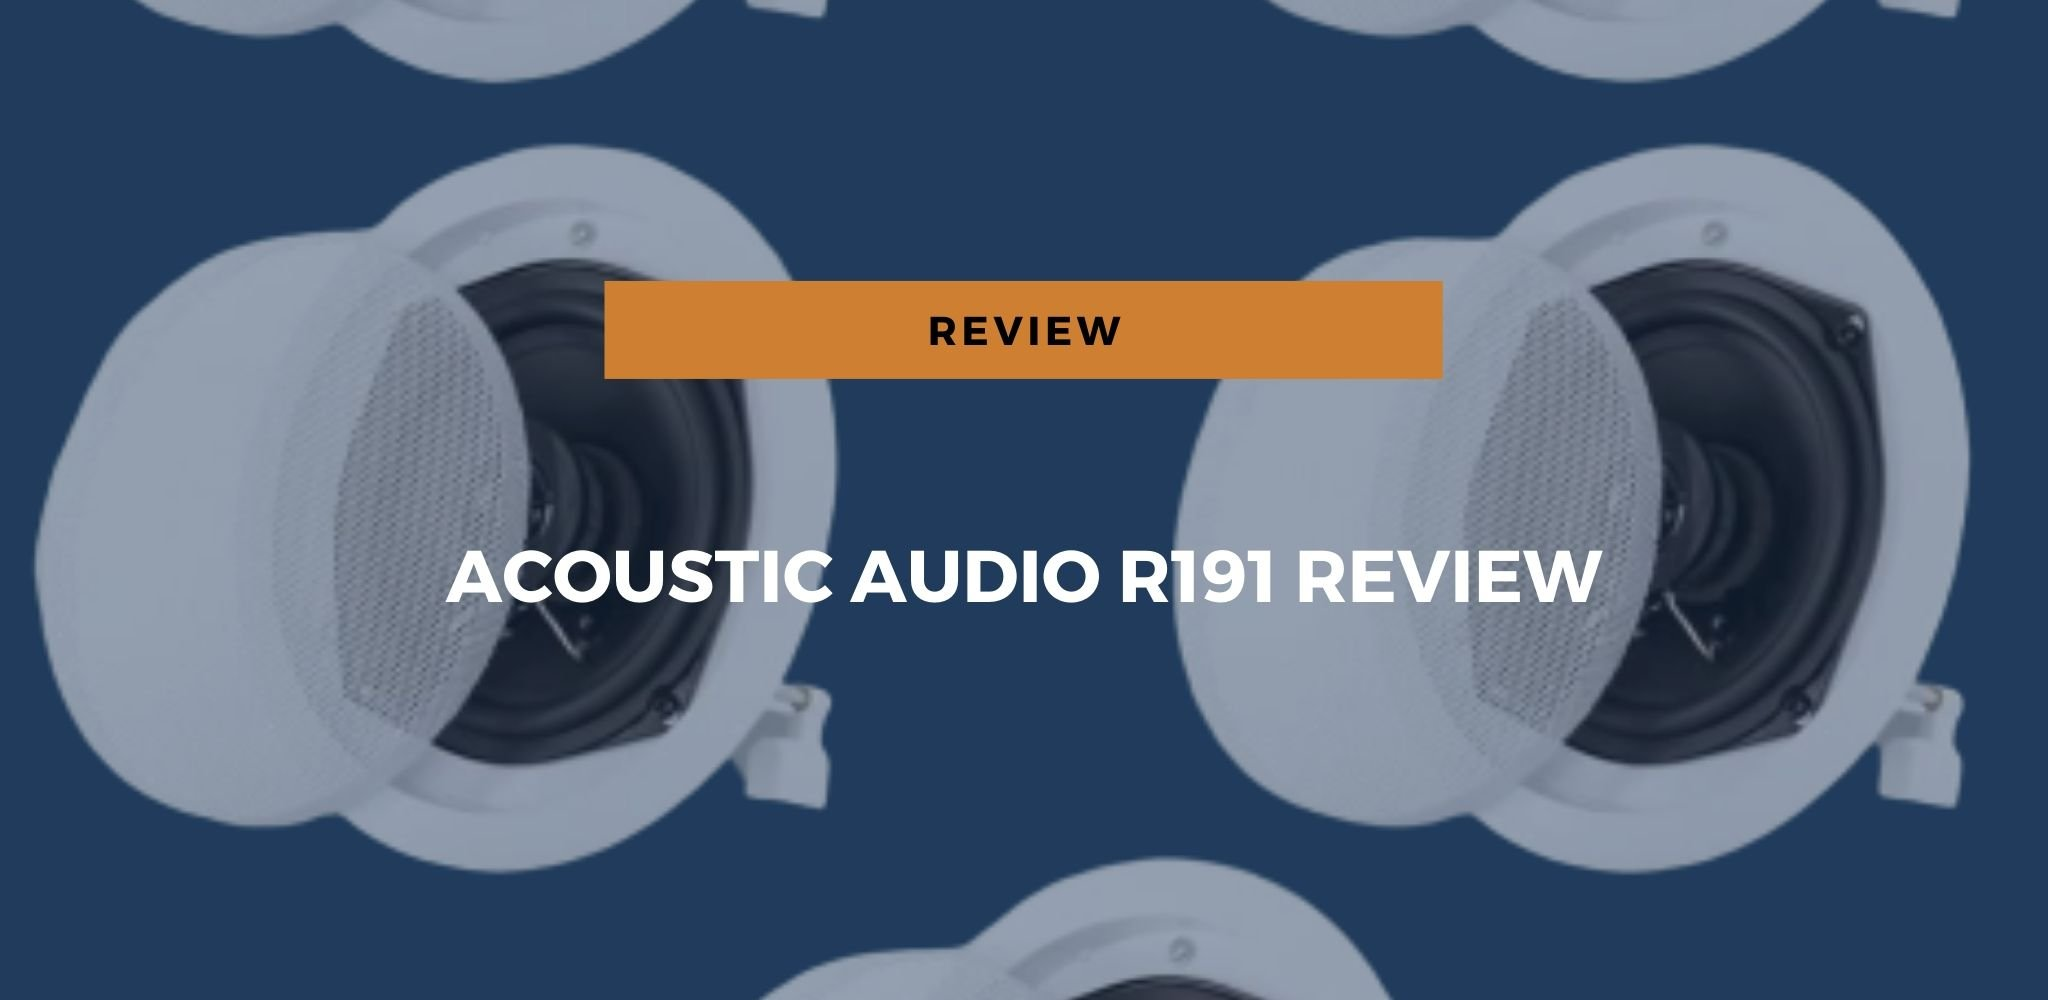 Acoustic Audio R191 Review: Affordable In-Wall or In-Ceiling Surround-Sound Speakers